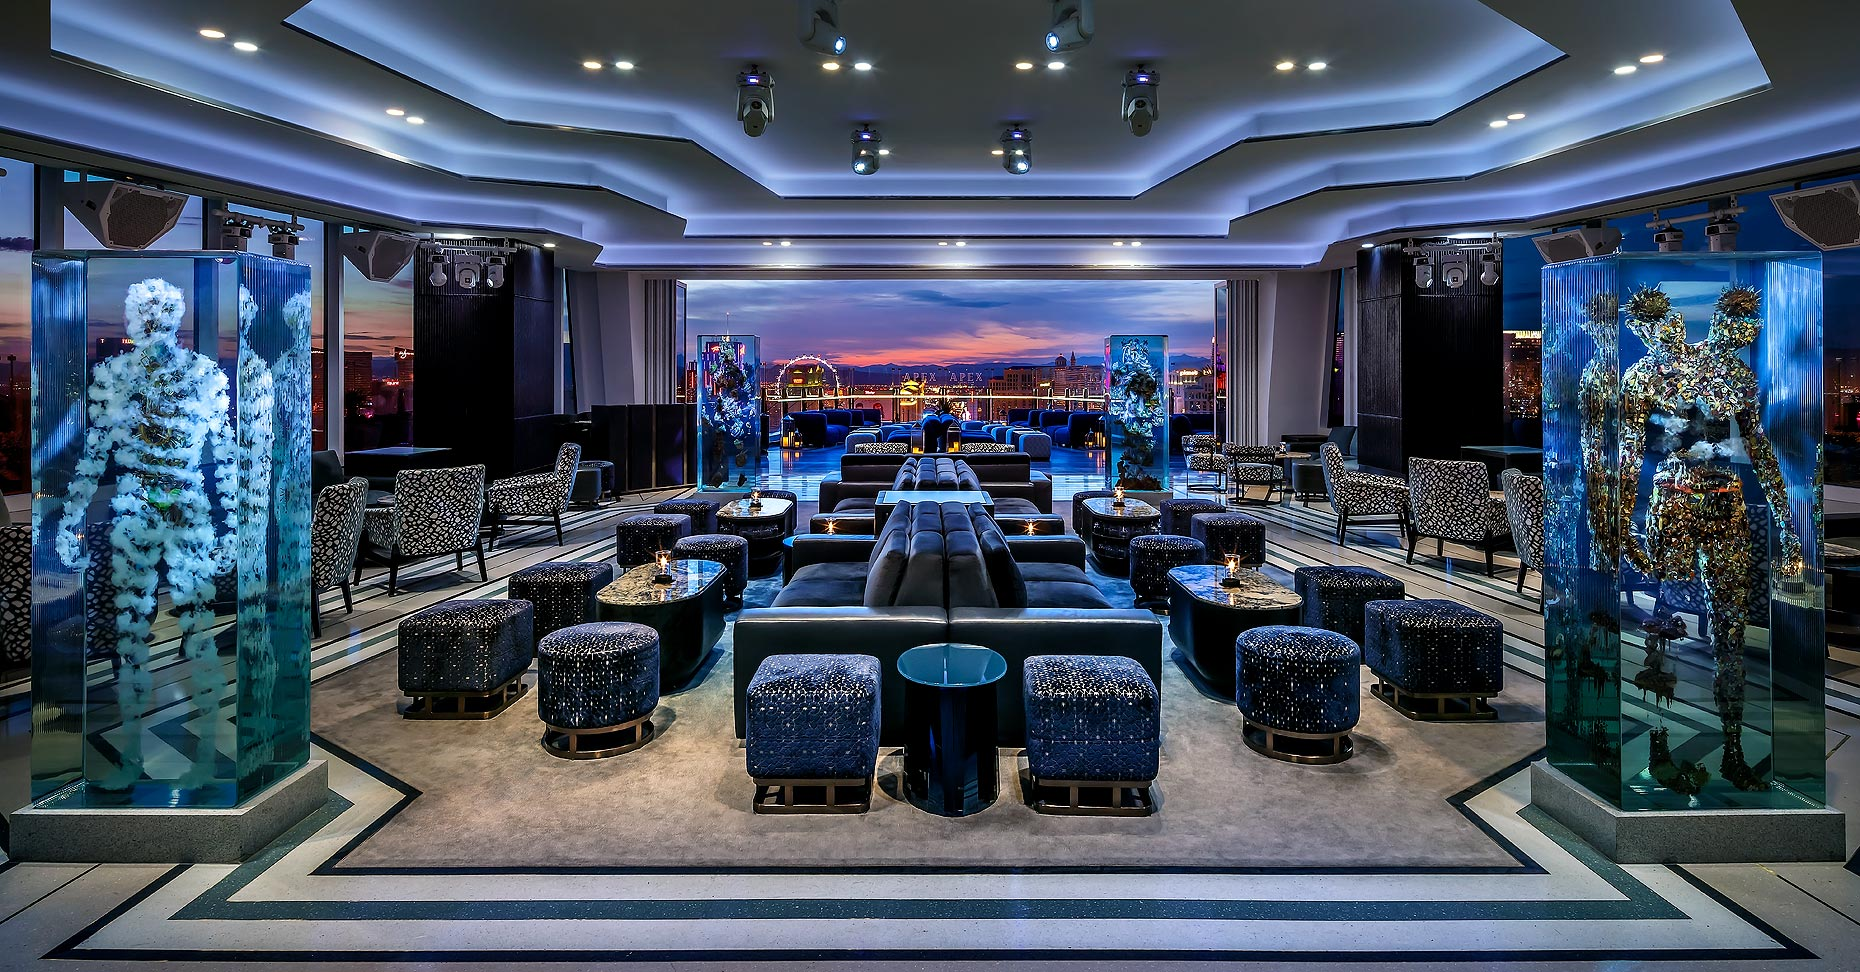 Apex_Social_Club_at_The_Palms_Las_Vegas_Studio_Munge_Design